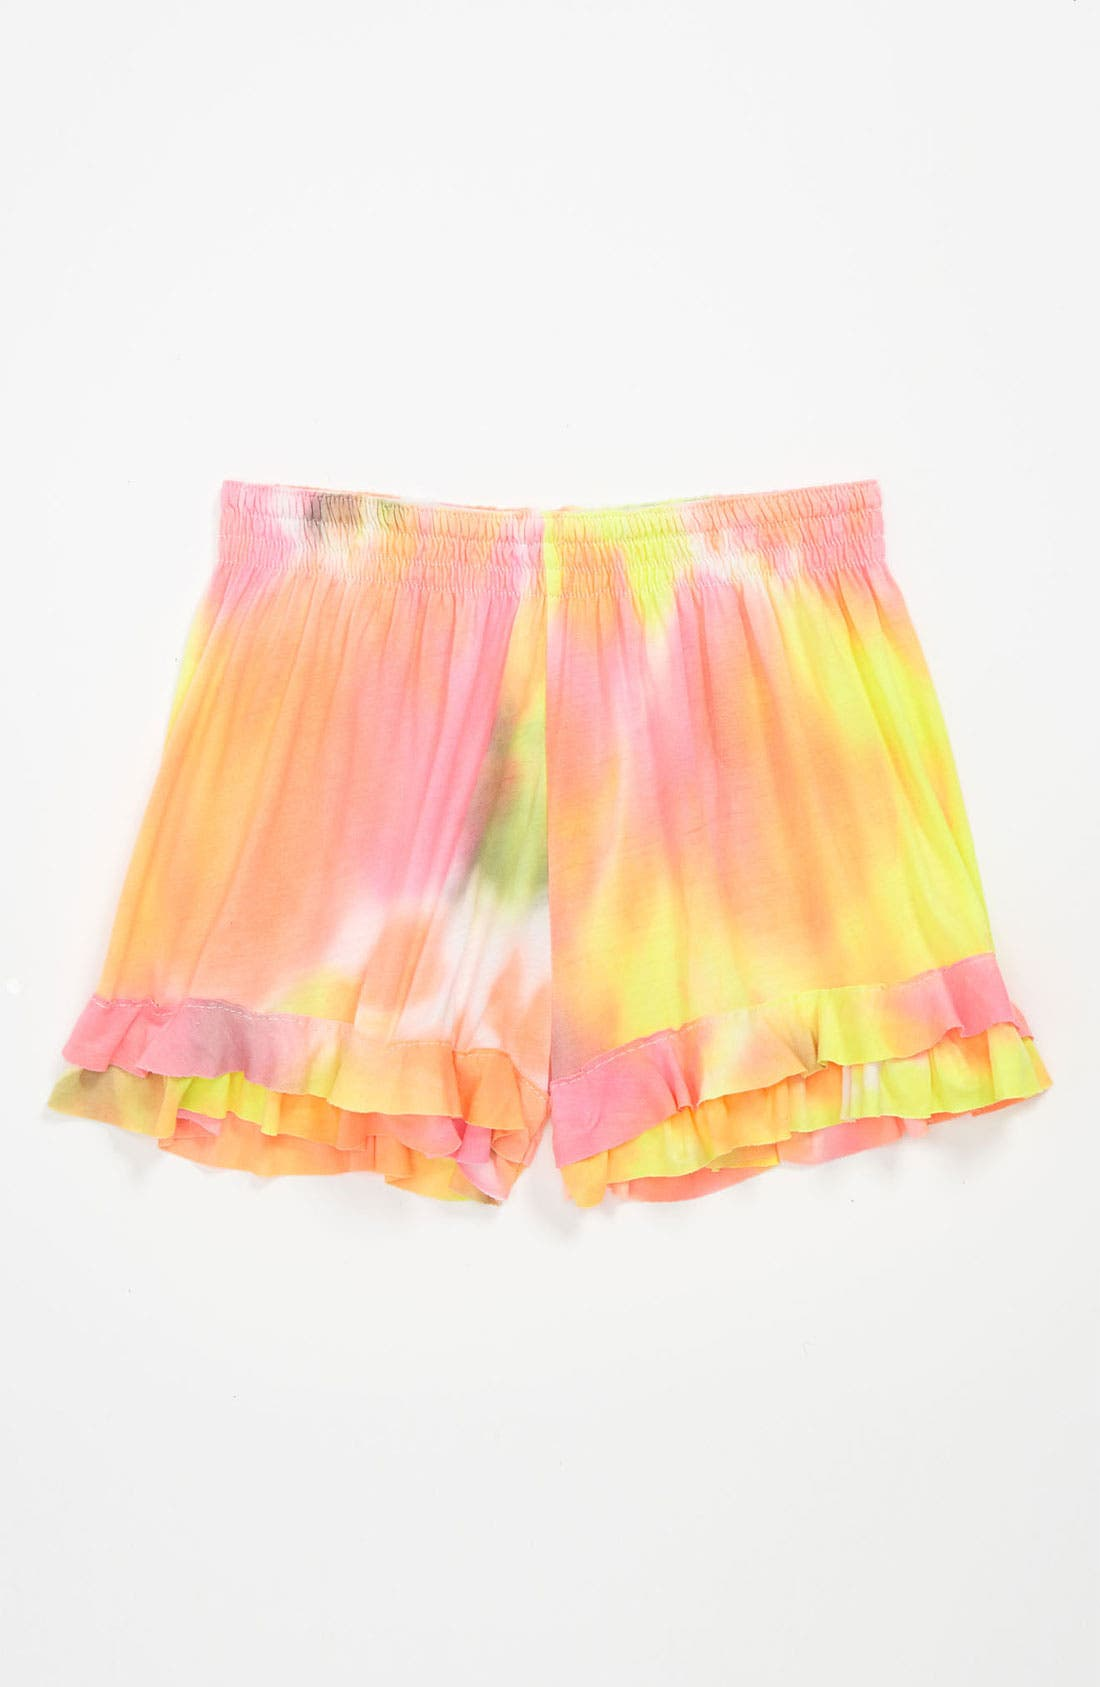 Alternate Image 1 Selected - Flowers by Zoe Ruffle Shorts (Big Girls)